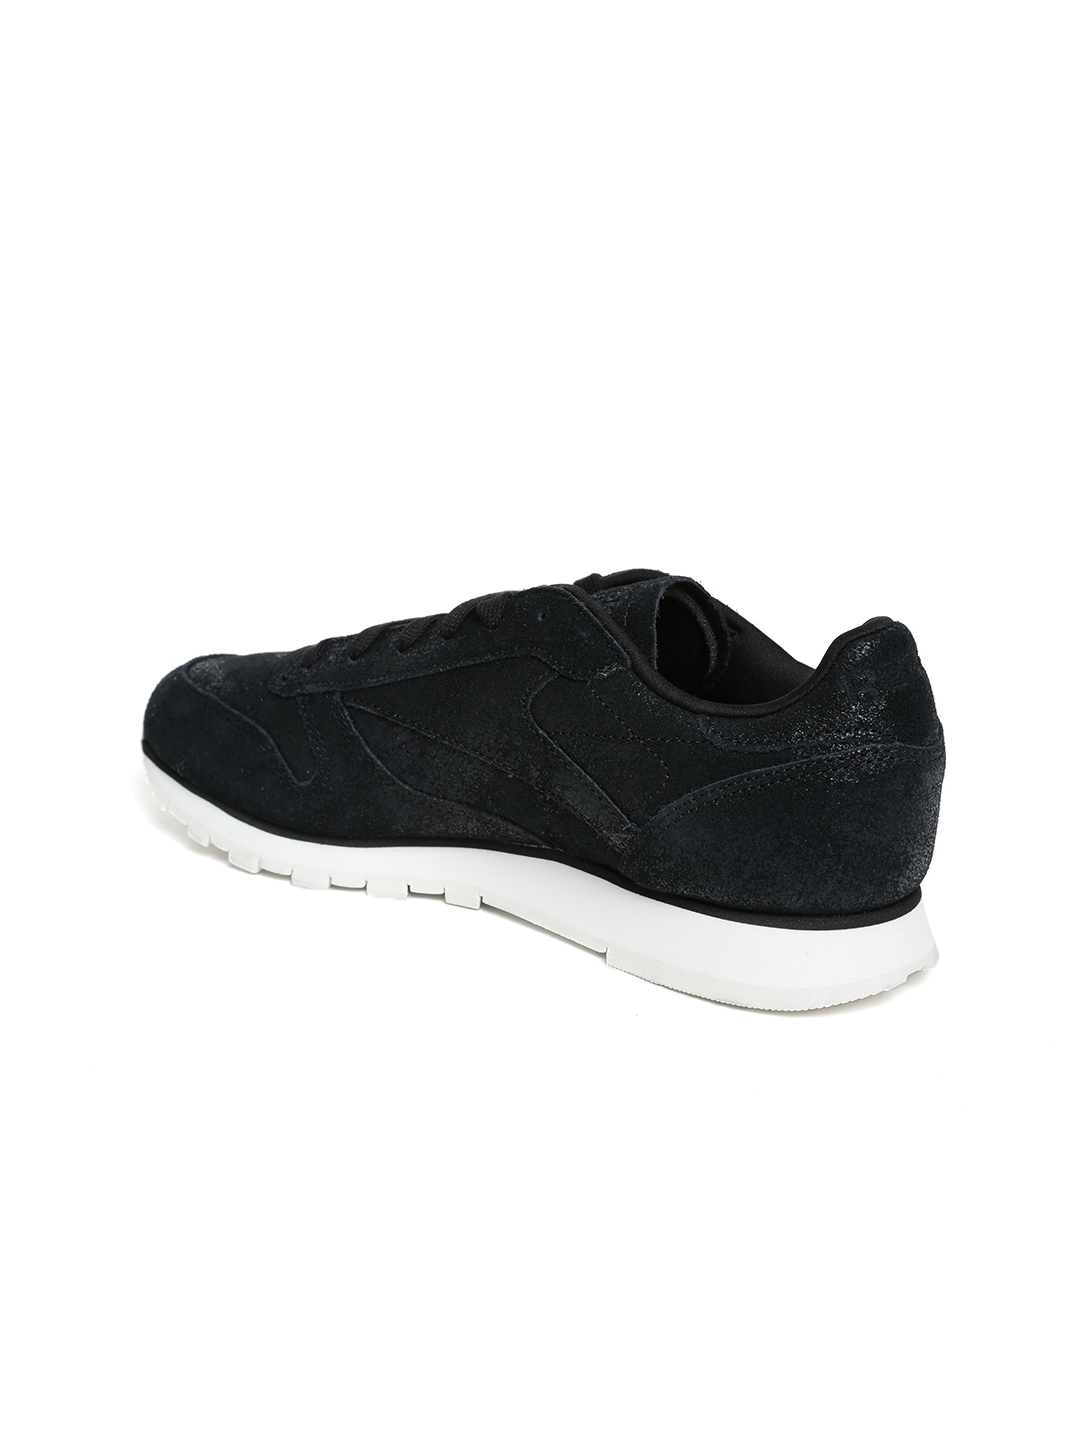 d6ede41f9a8 Buy Reebok Classic Women Black CL Shimmer Leather Sneakers - Casual ...